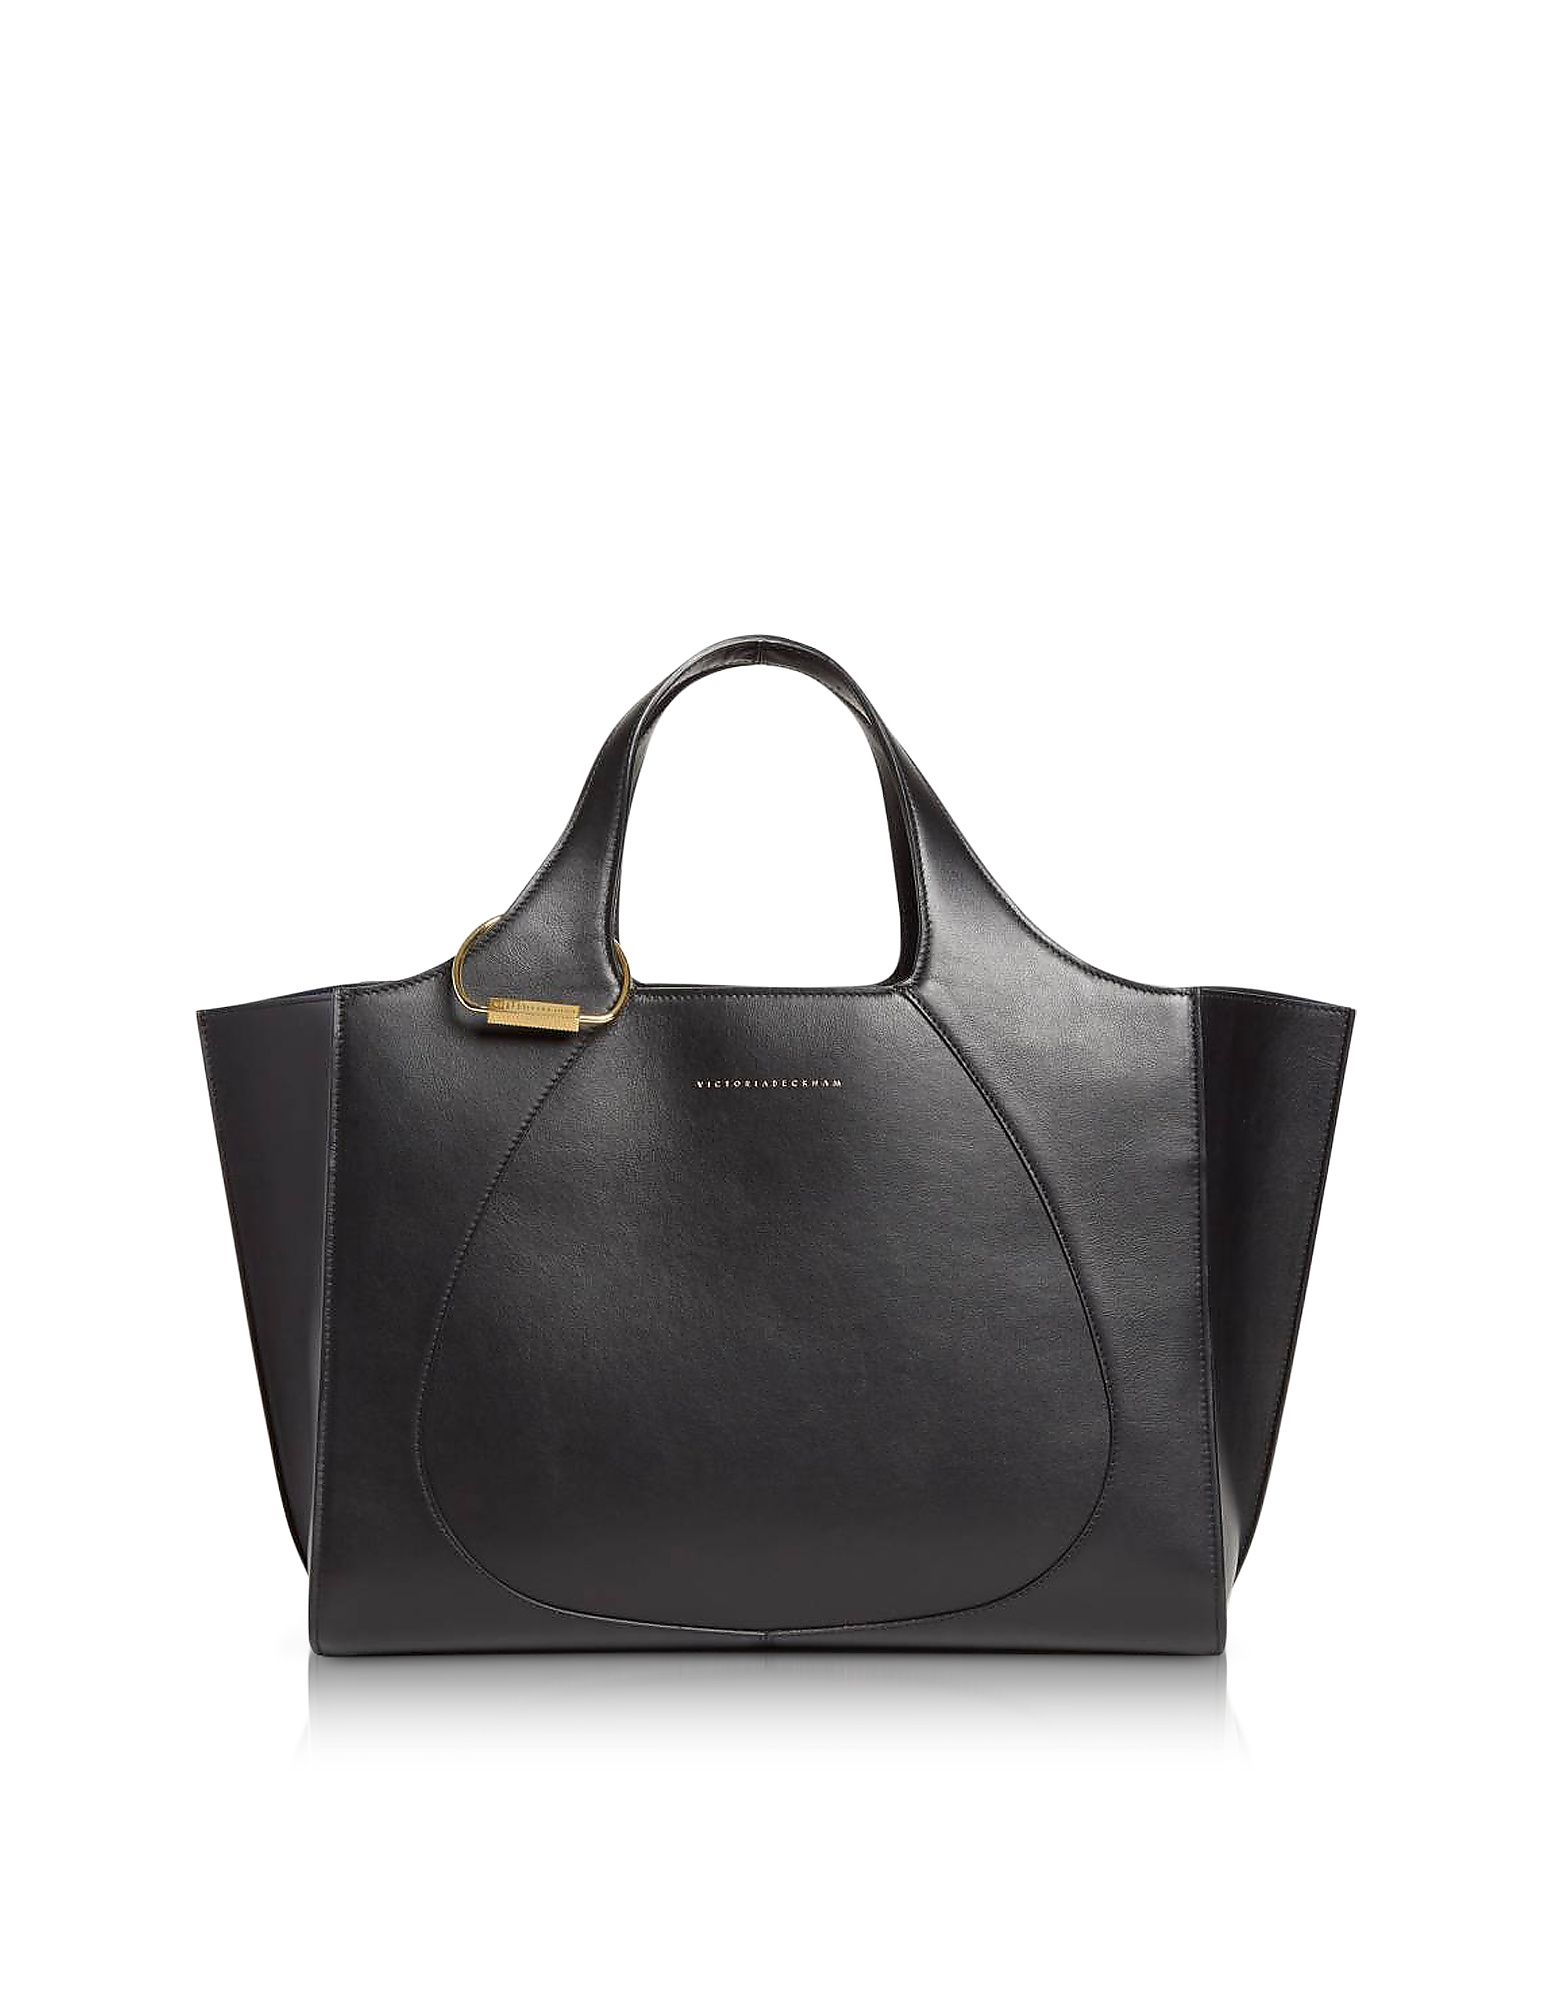 Victoria Beckham Handbags, Black Leather Newspaper Tote Bag